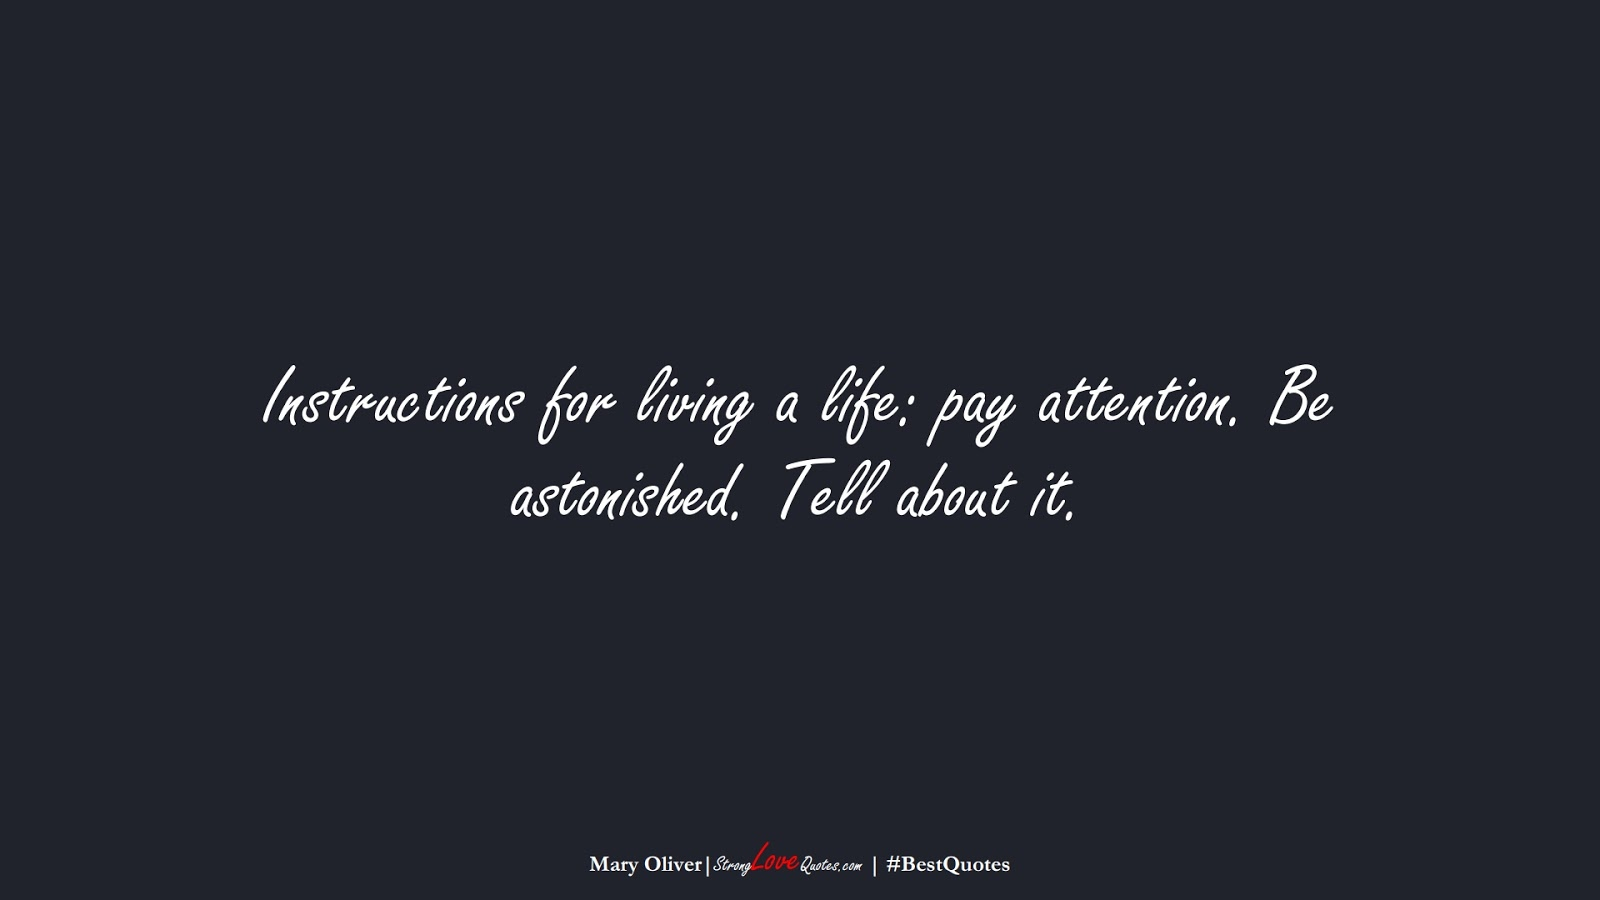 Instructions for living a life: pay attention. Be astonished. Tell about it. (Mary Oliver);  #BestQuotes